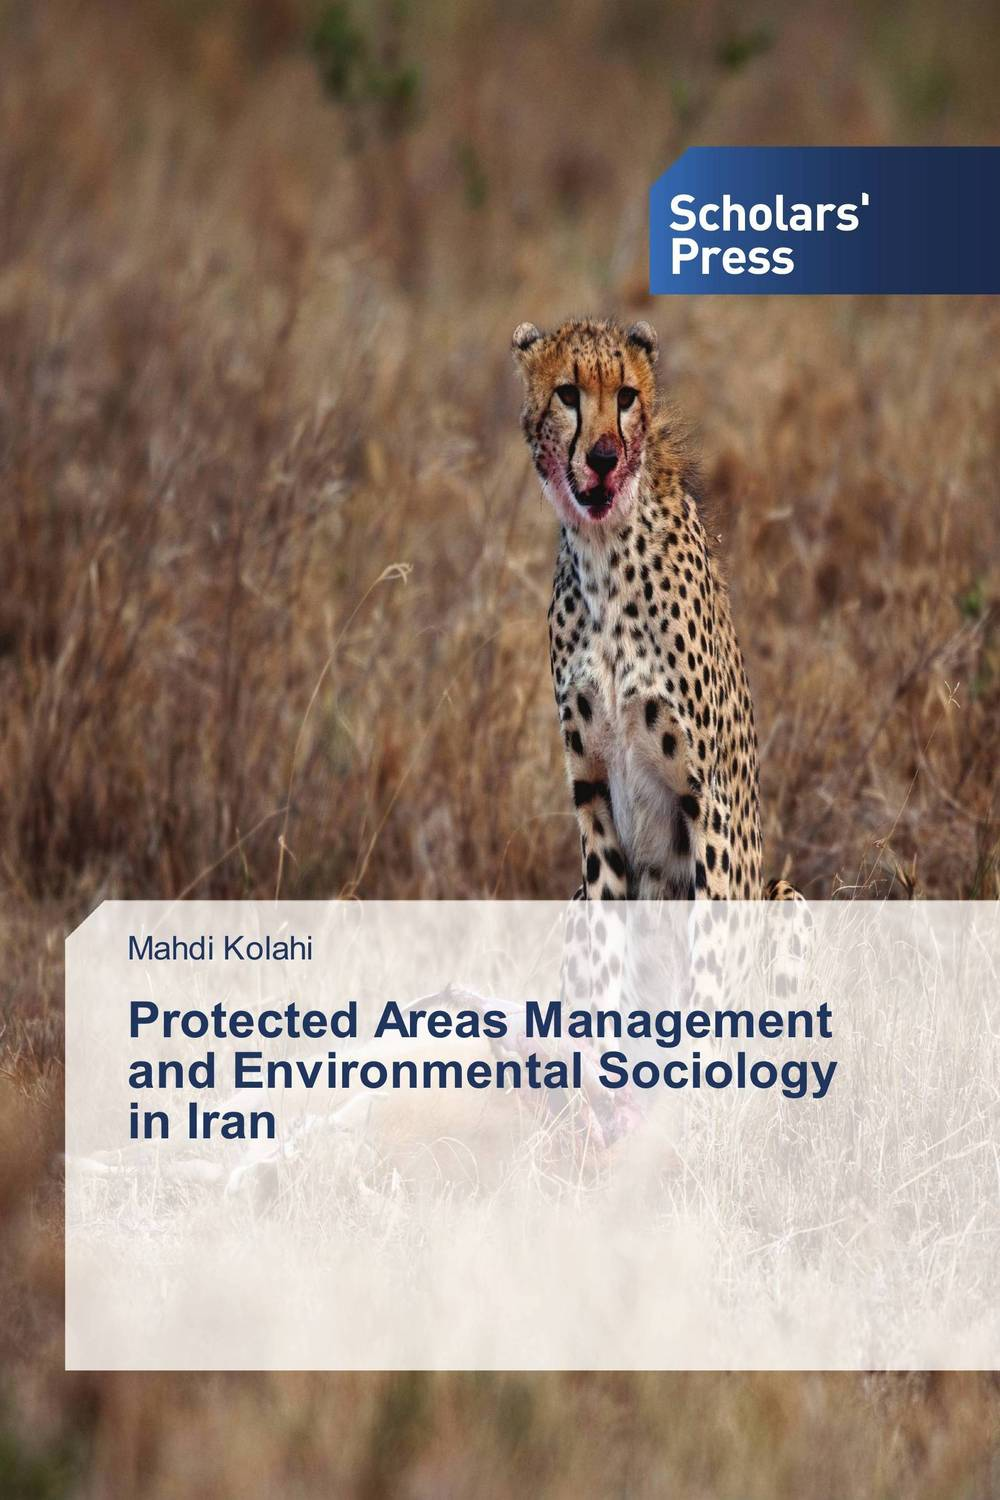 цена на Protected Areas Management and Environmental Sociology in Iran